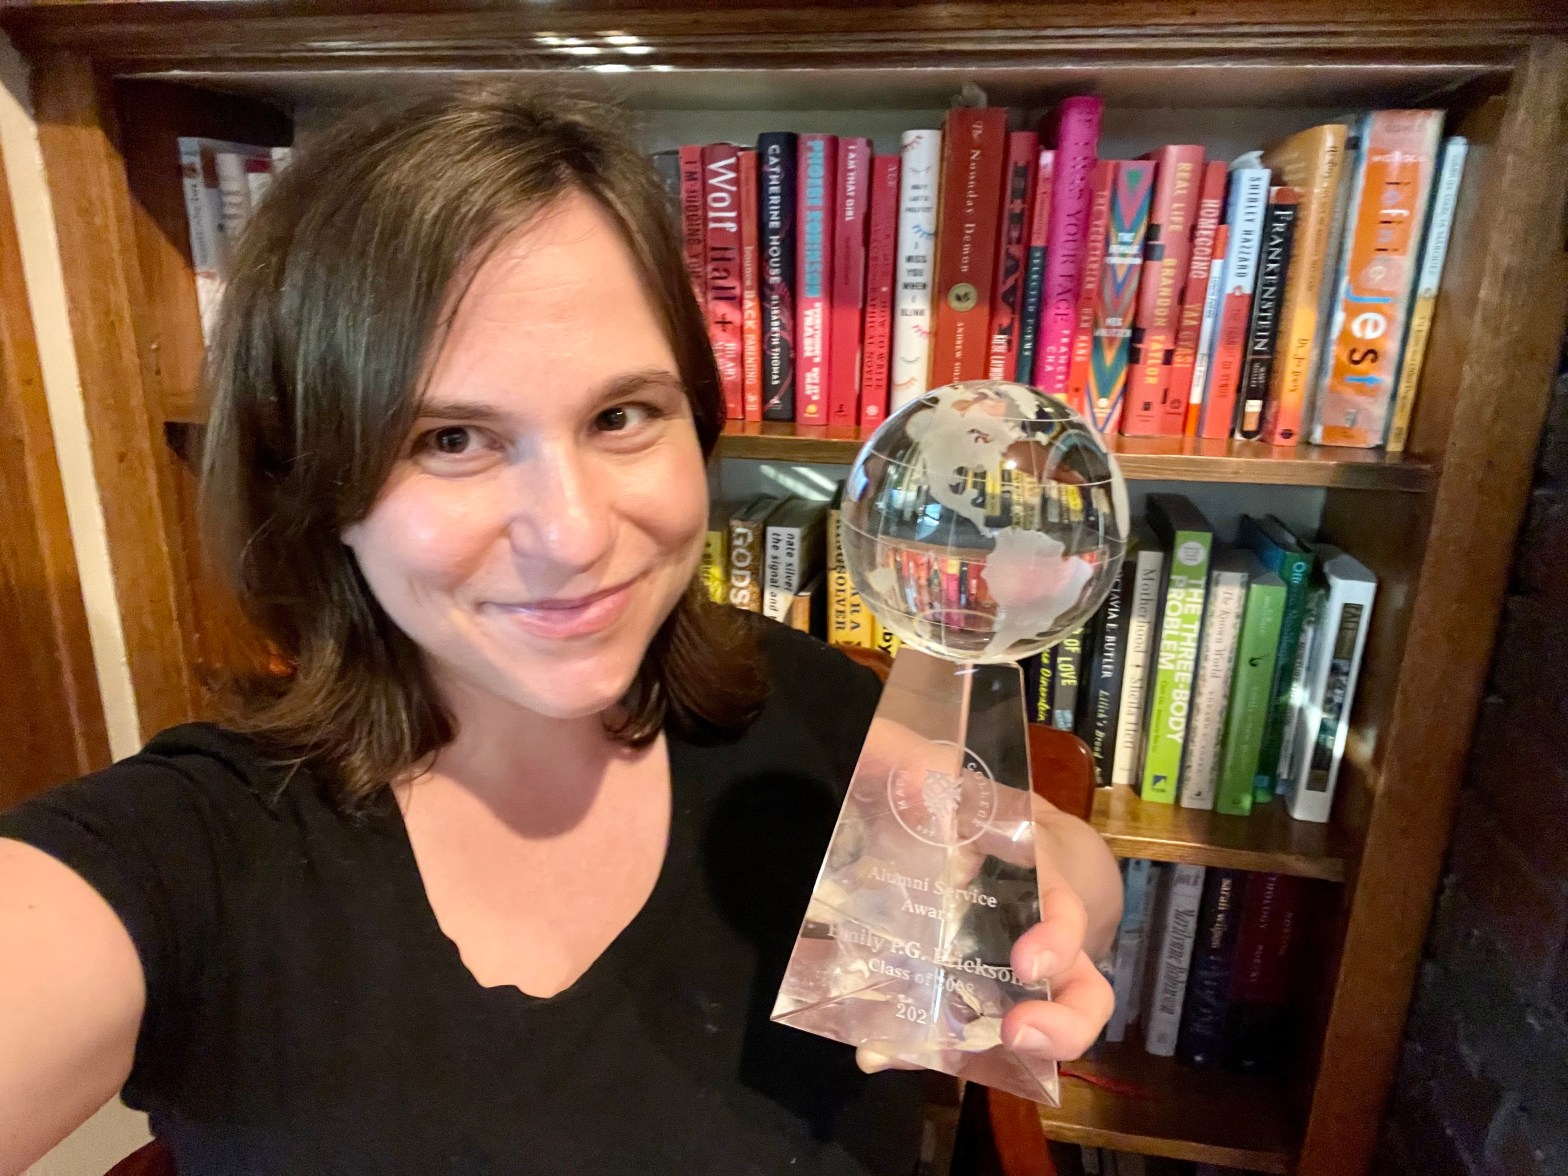 Emily P.G. Erickson with her 2021 Alumni Service Award from Macalester College